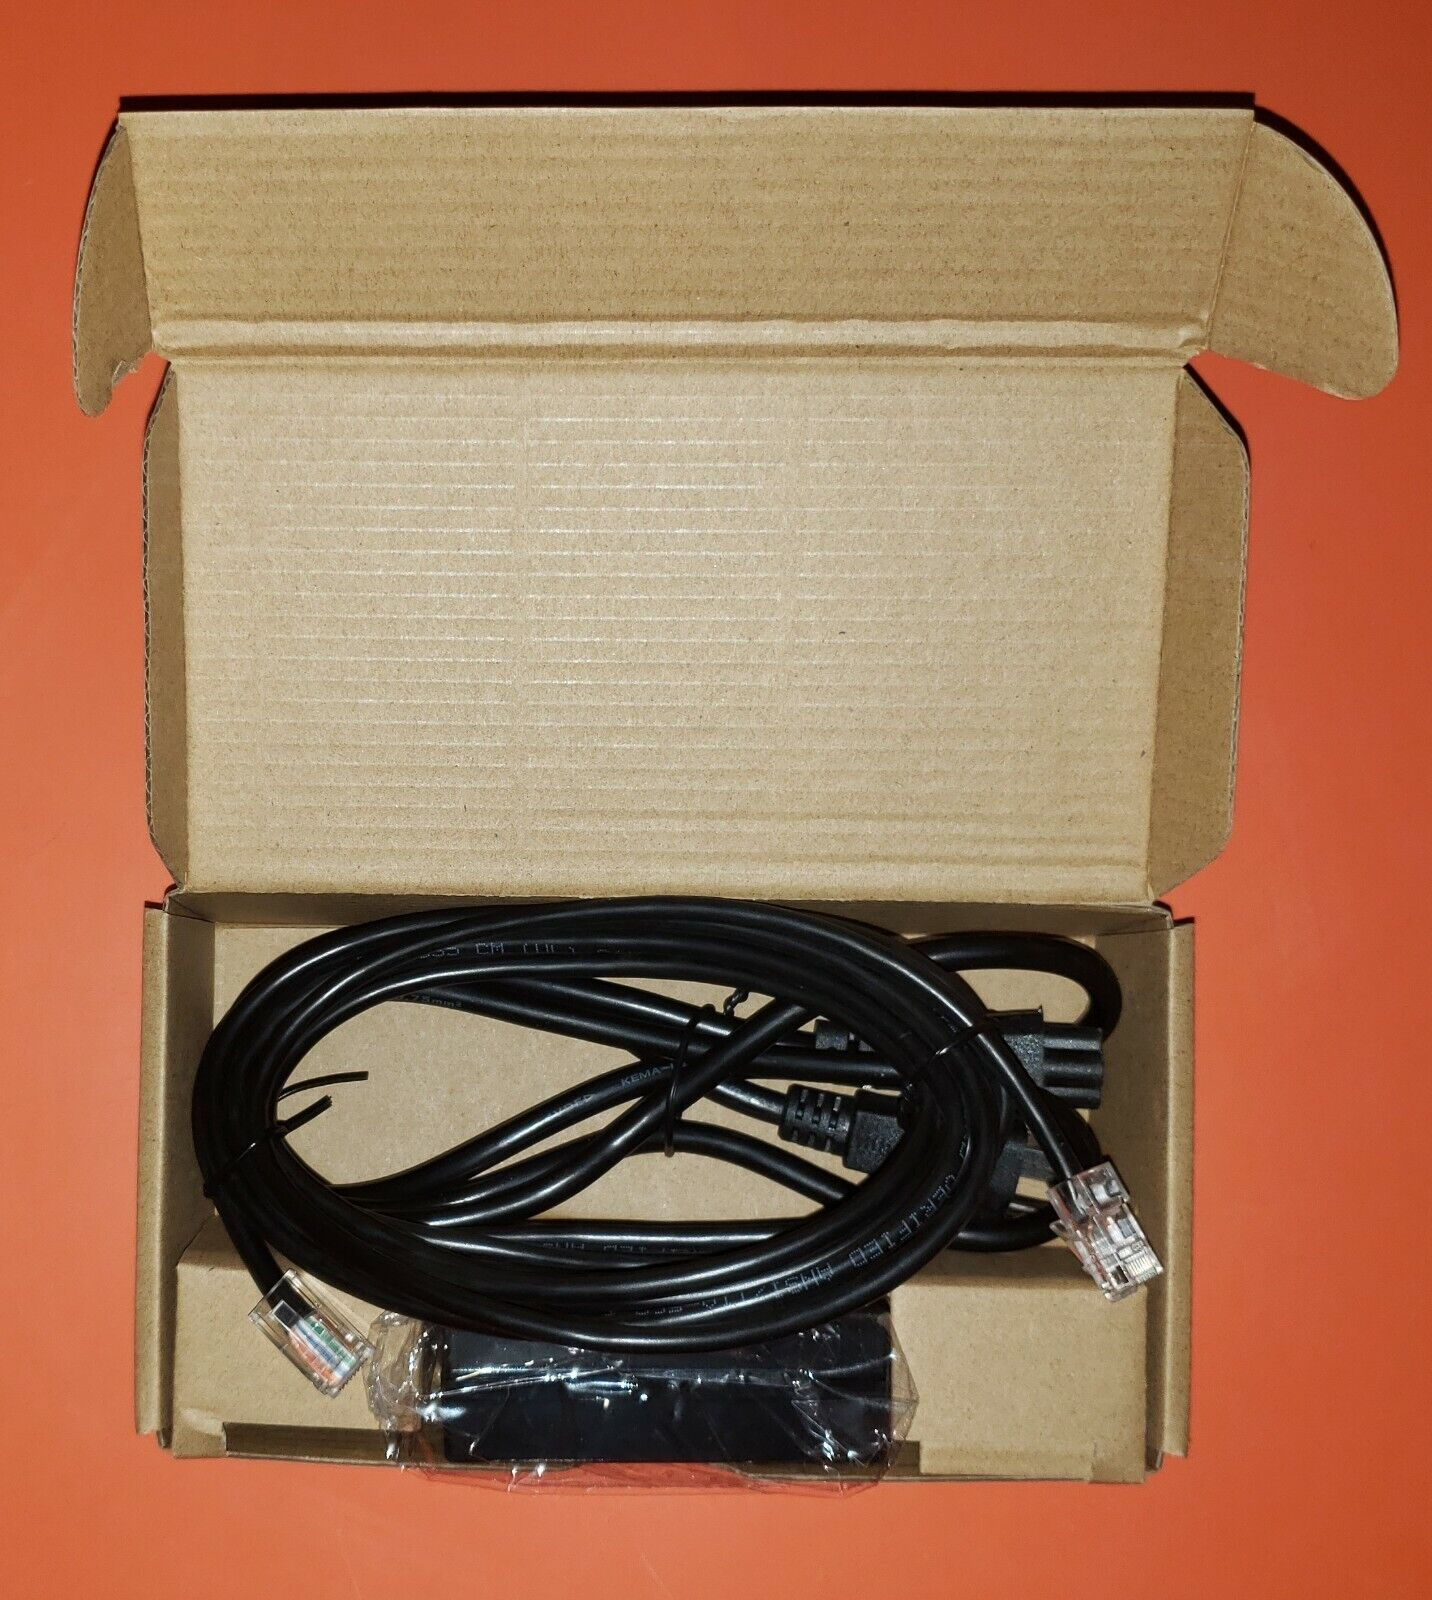 48V 24W .5A POE Injector - $14.99